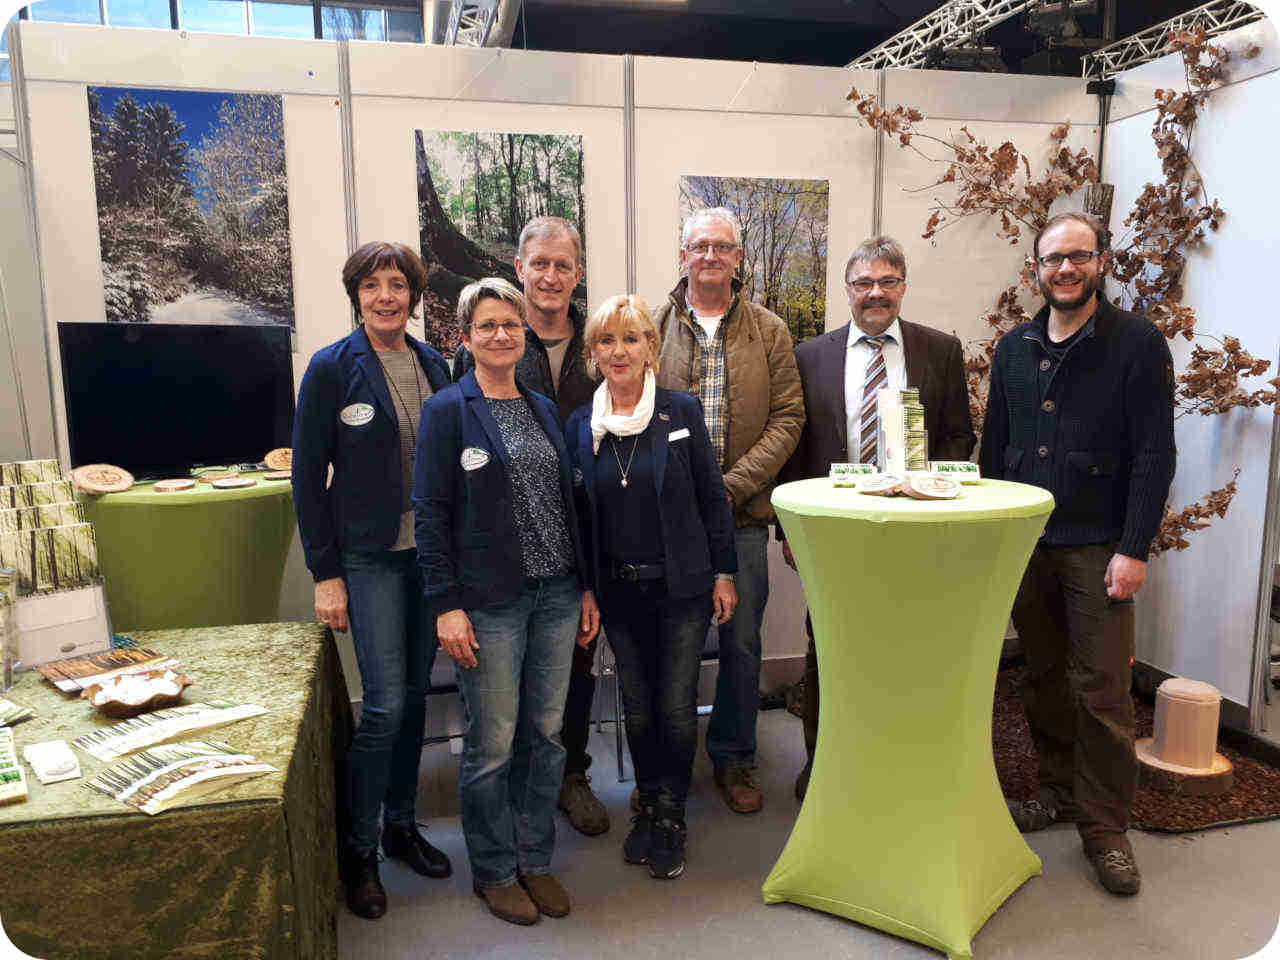 Team am Messestand vom RuheForst Hümmel